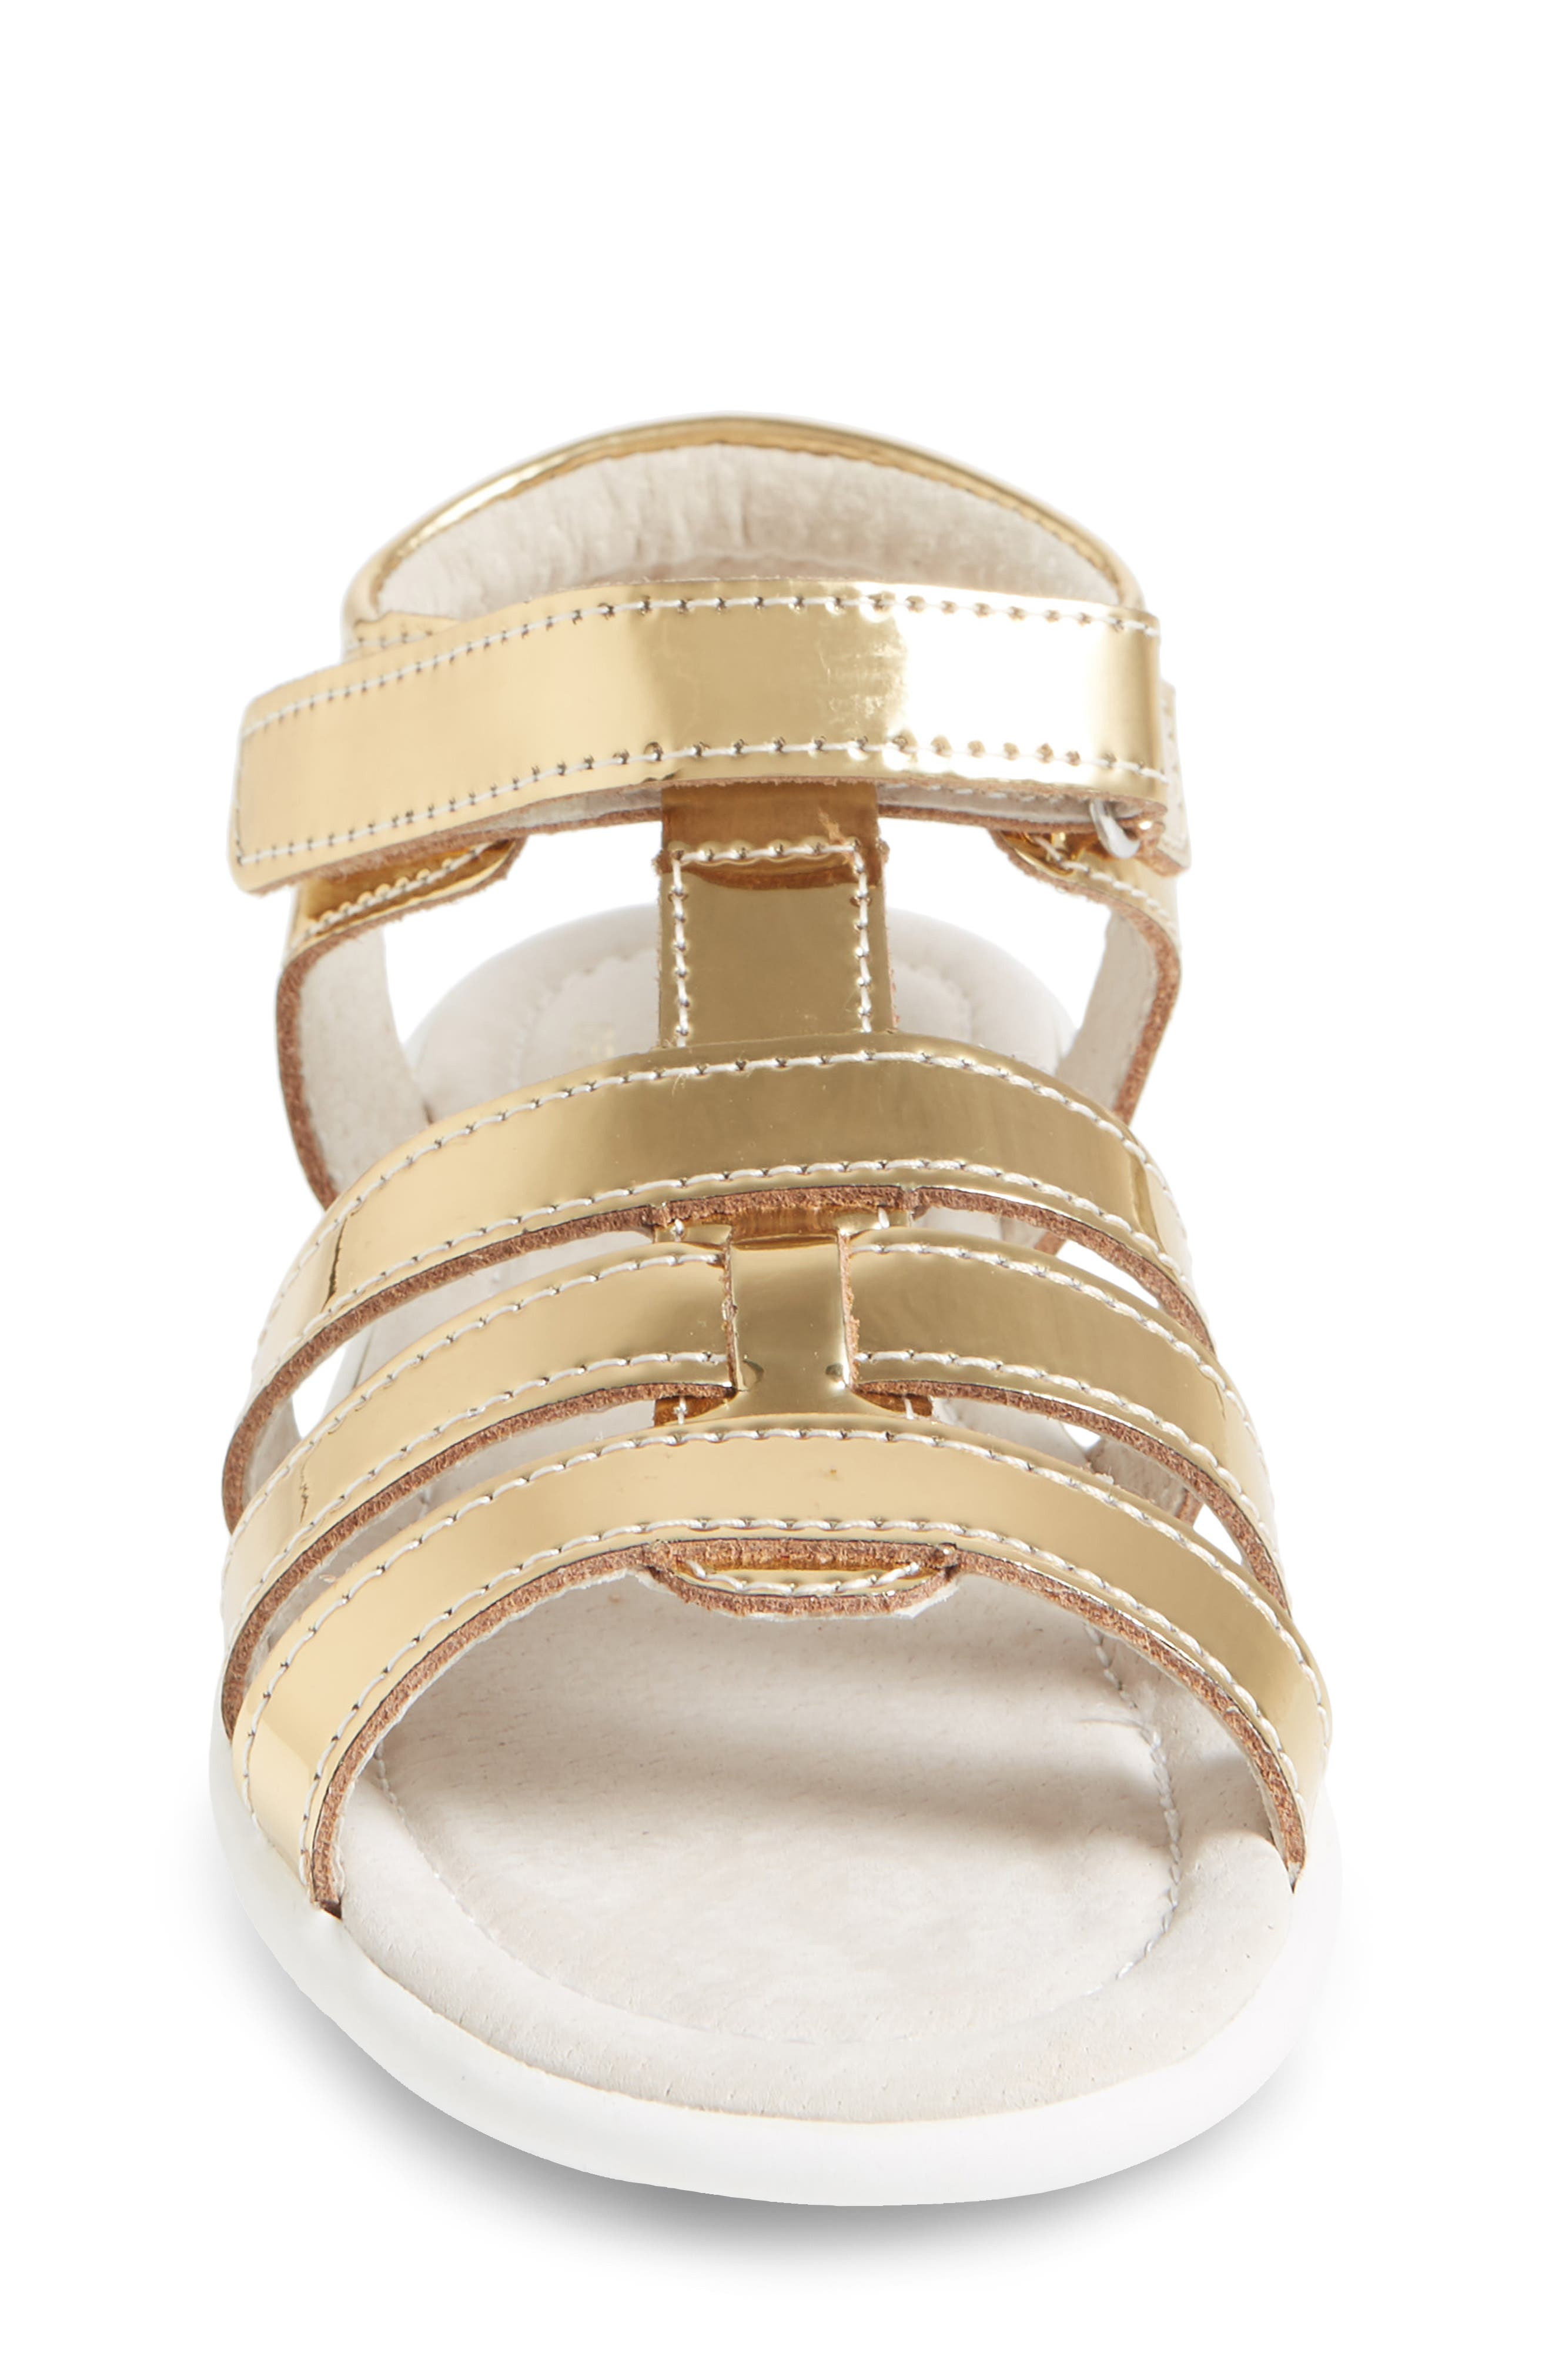 Fe Metallic Fisherman Sandal,                             Alternate thumbnail 4, color,                             Gold